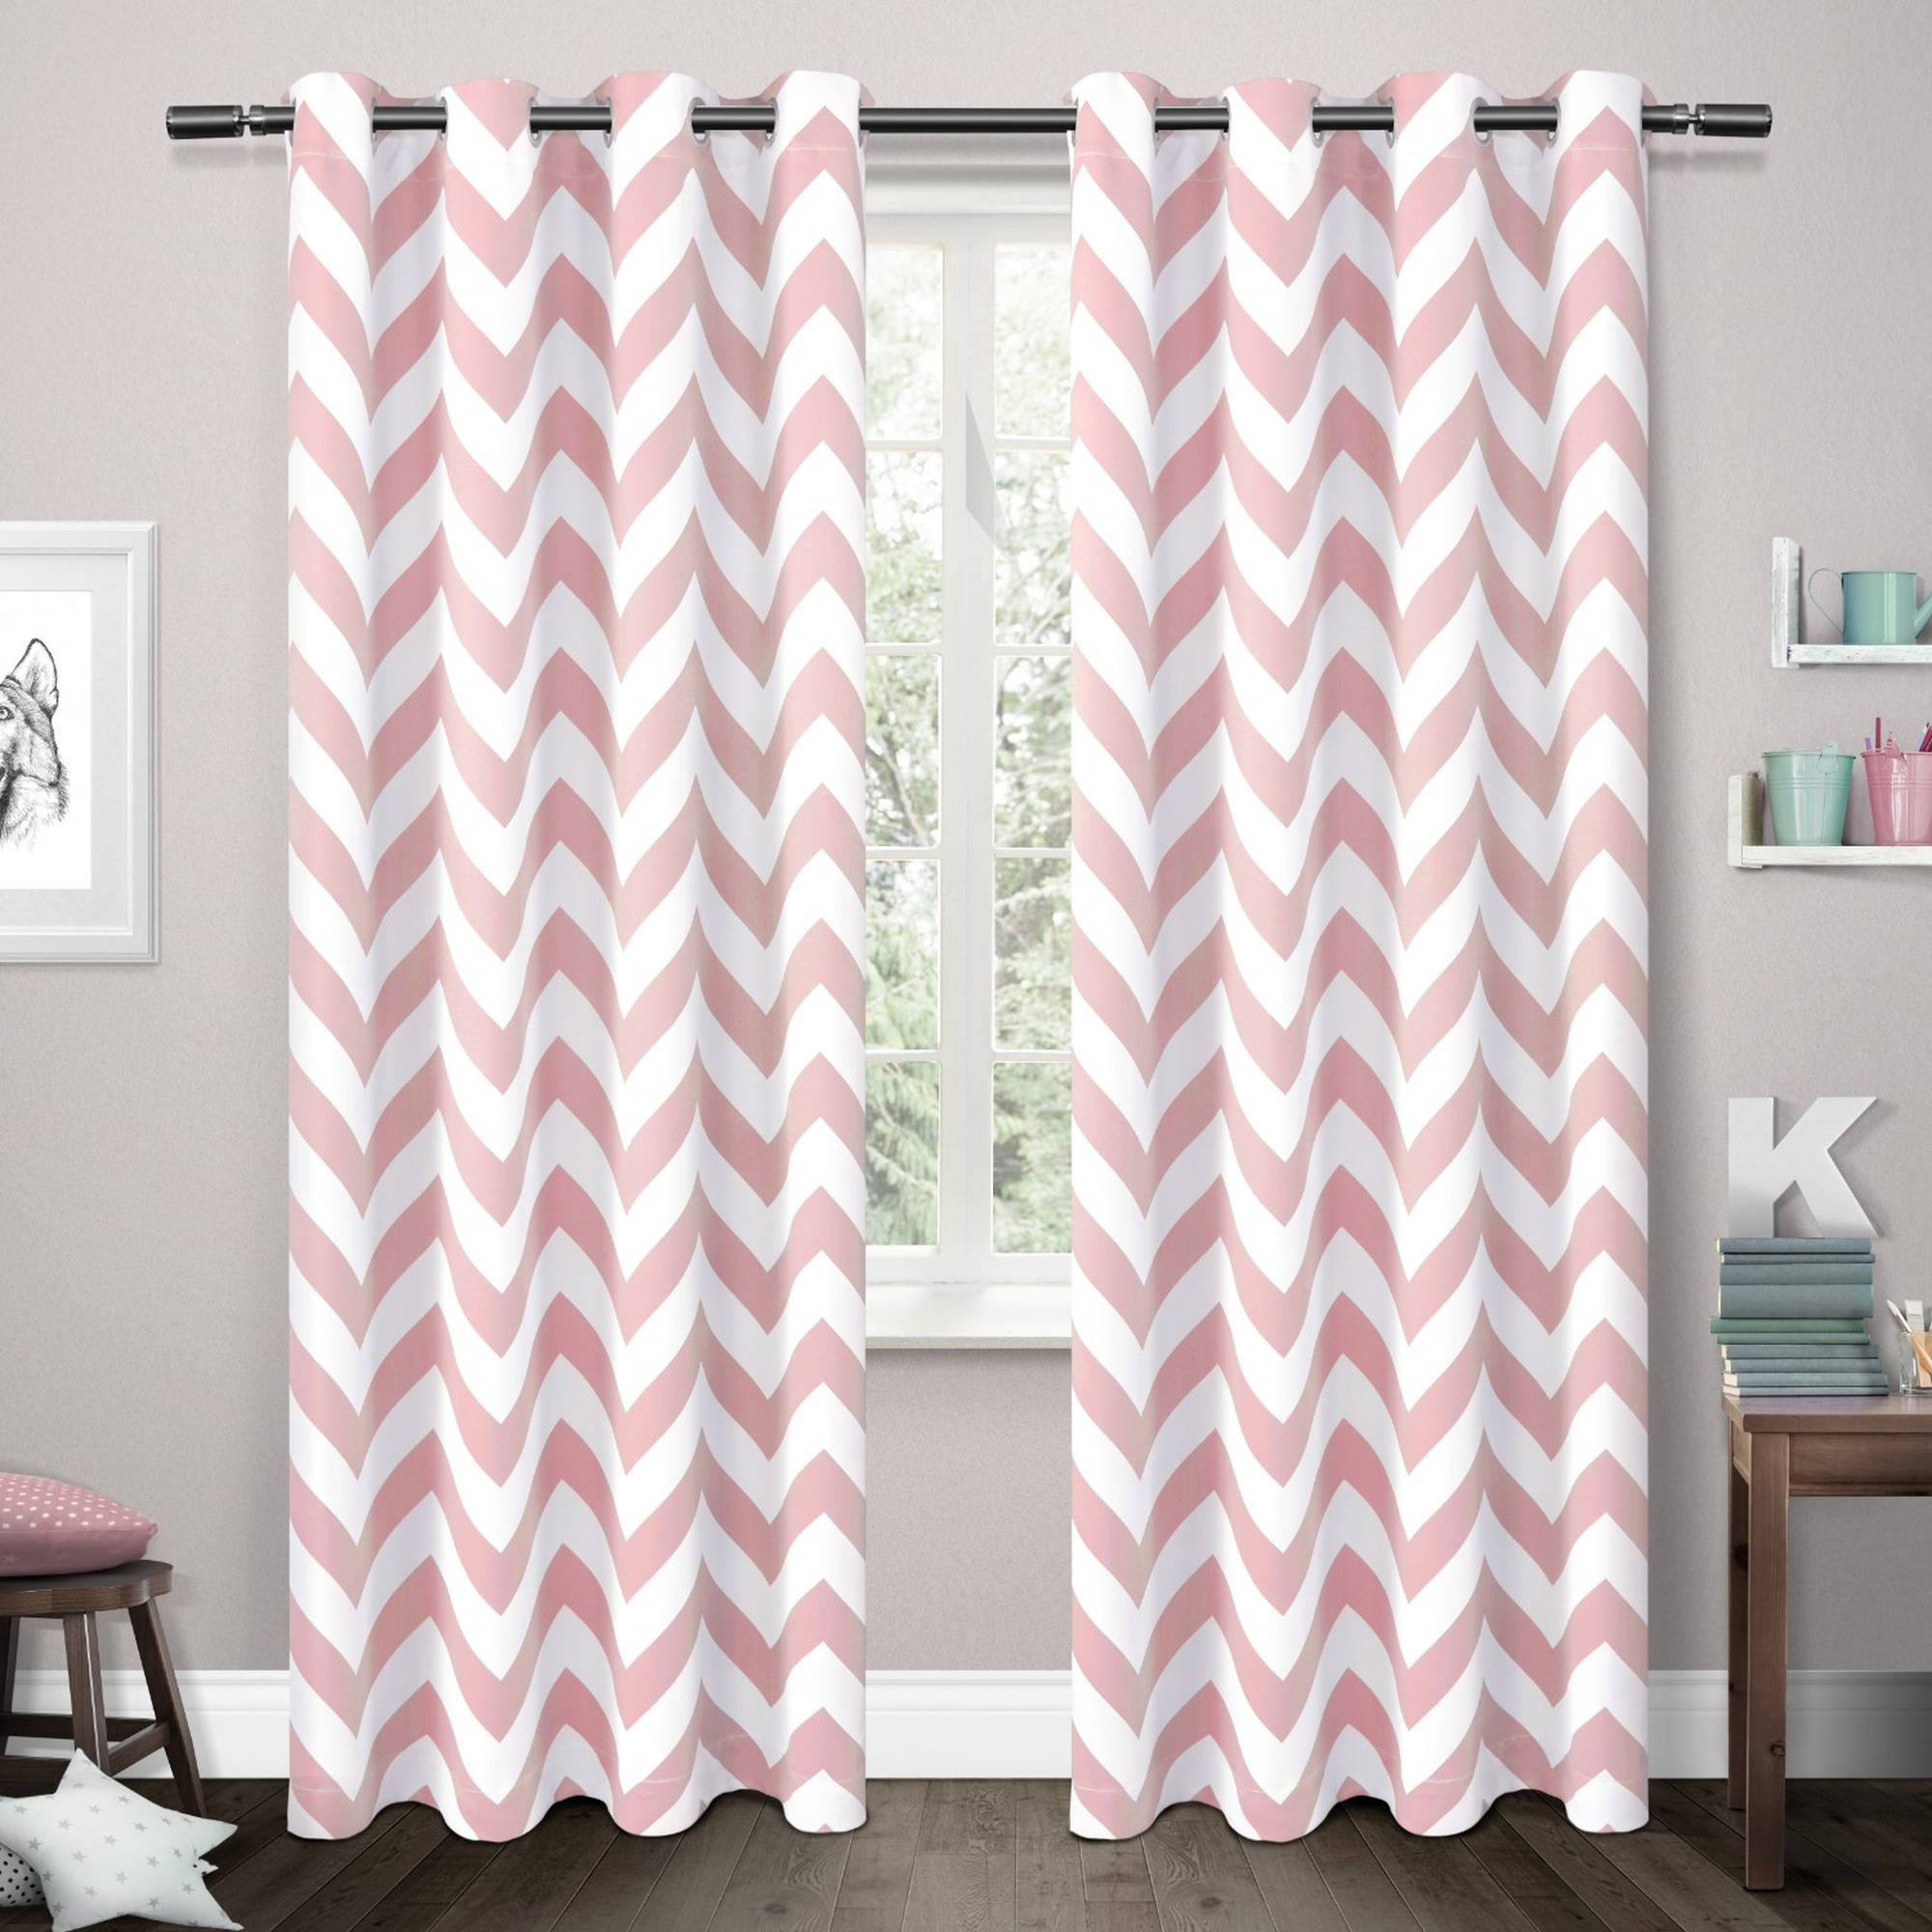 Kids Mars Woven Room-Darkening Thermal Grommet-Top Window Curtain Panels, Set of 2